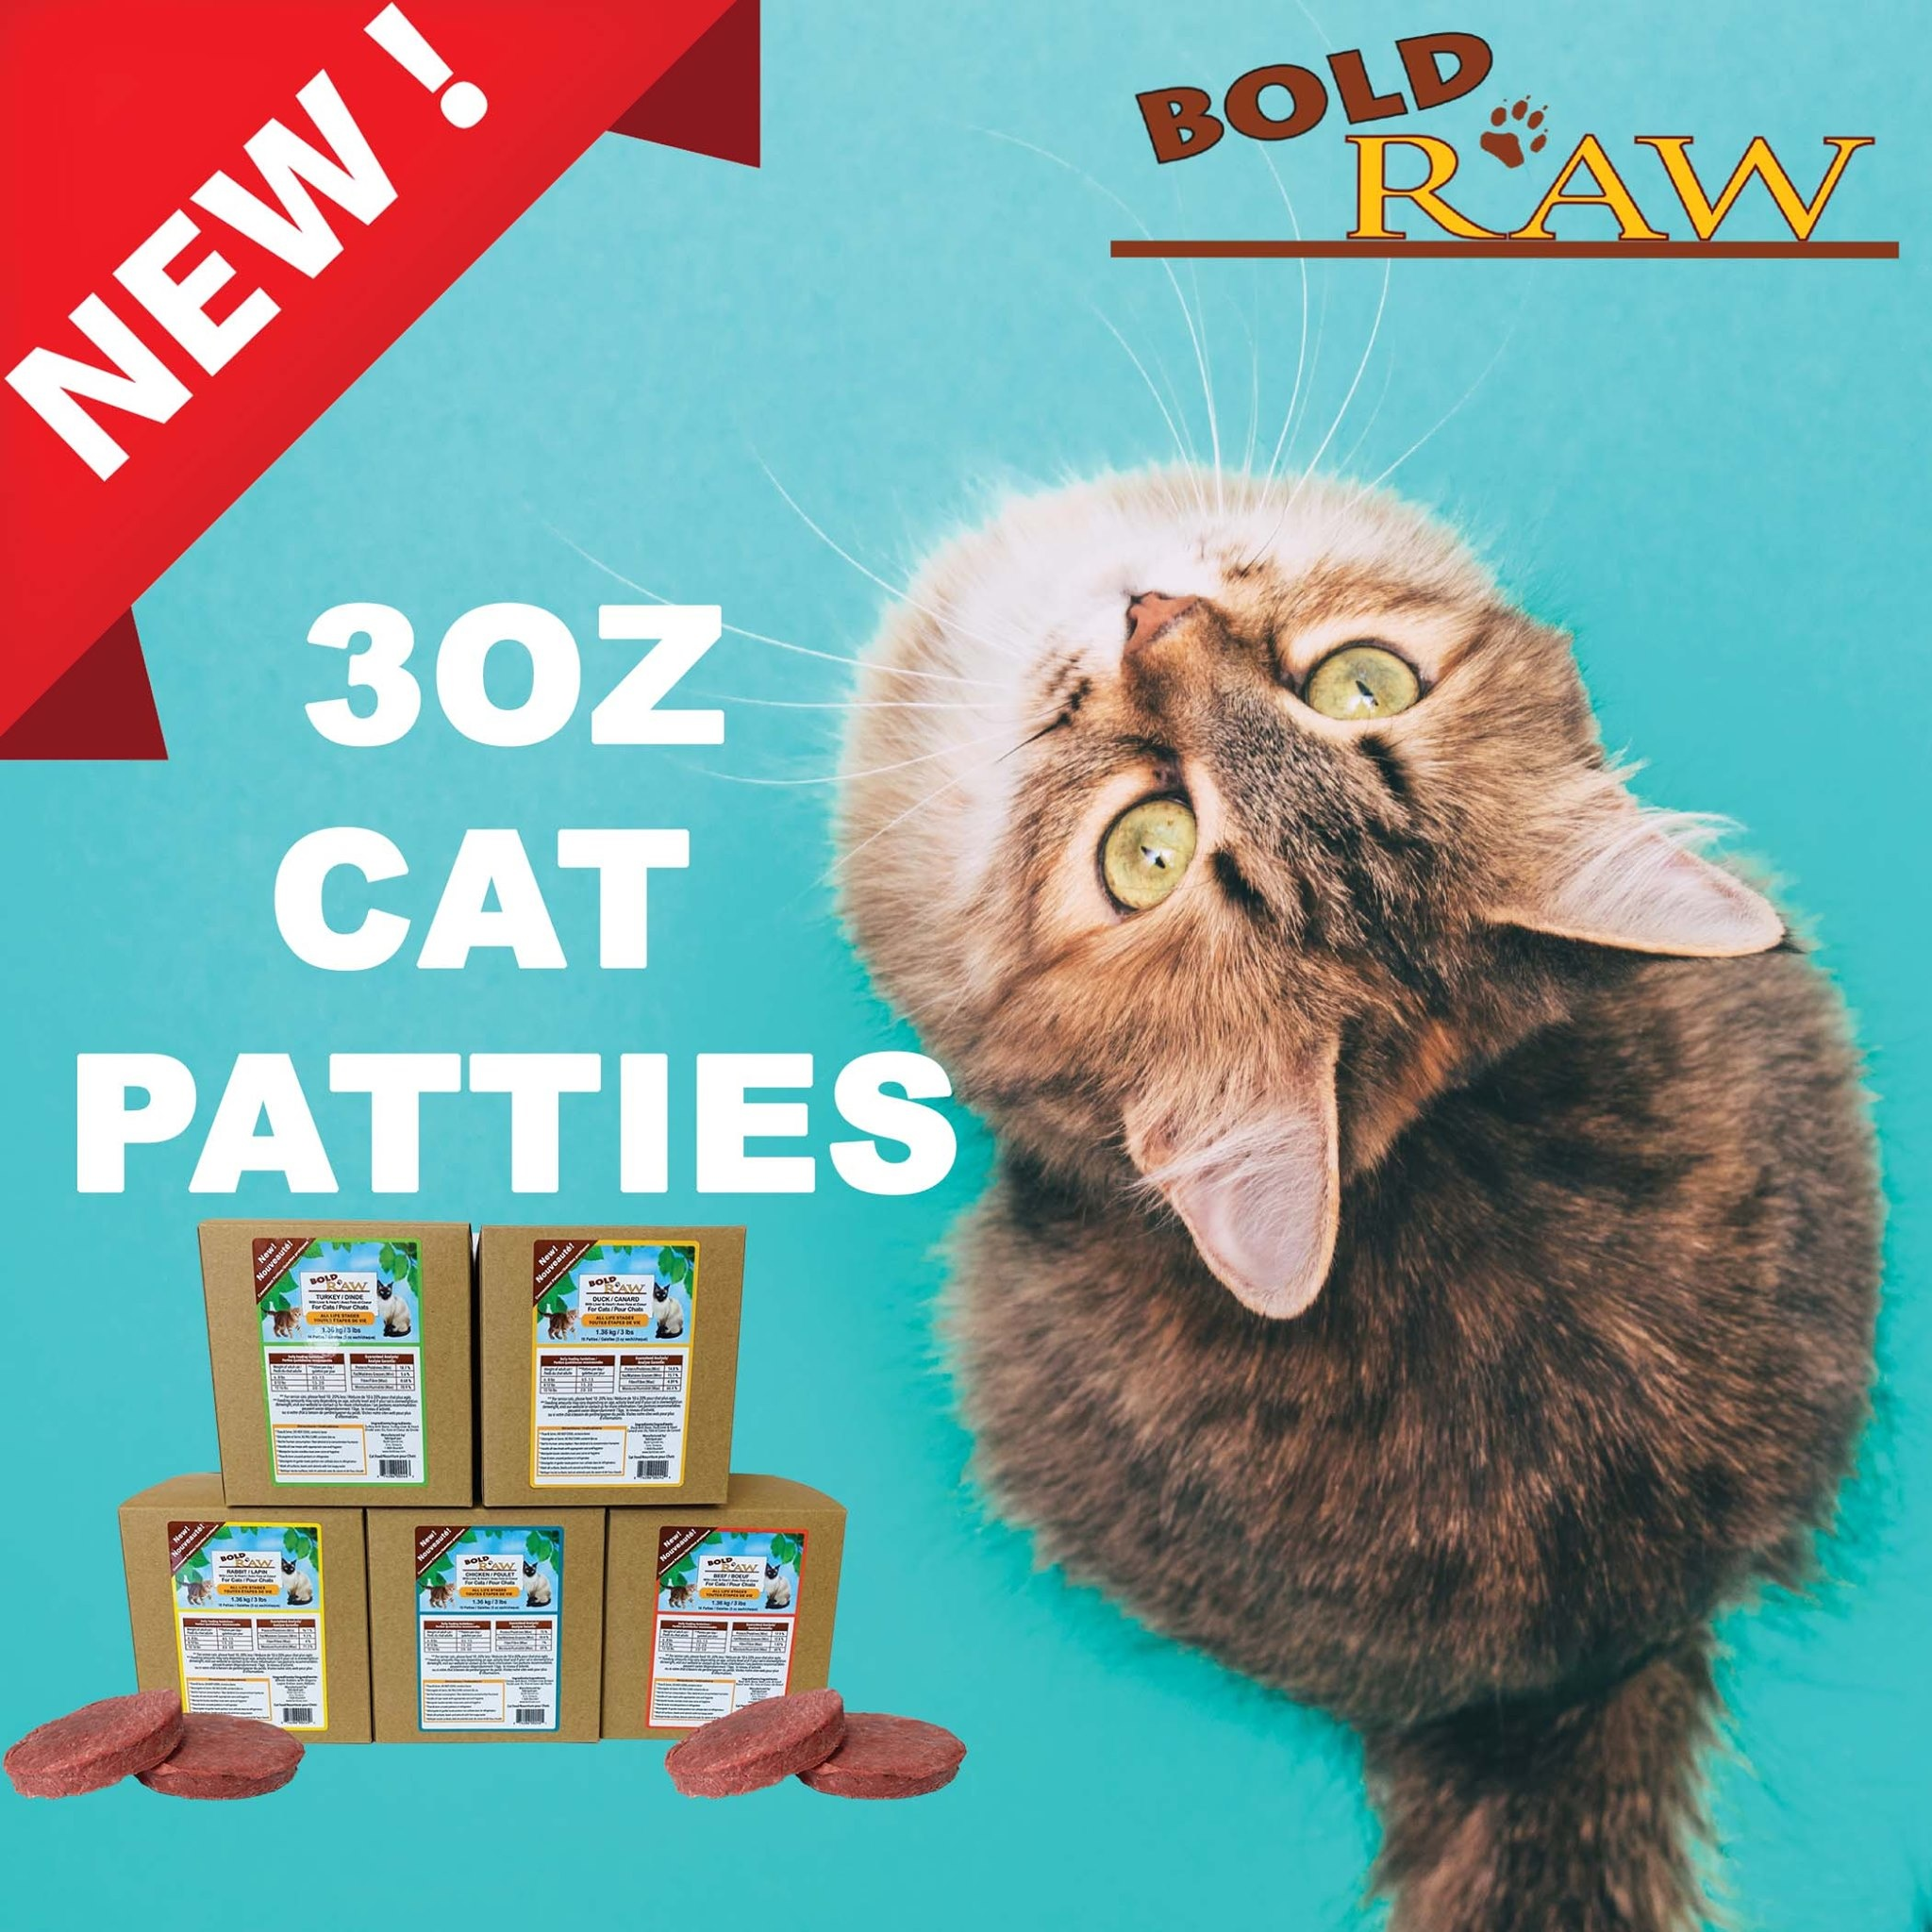 Bold Raw for Cats